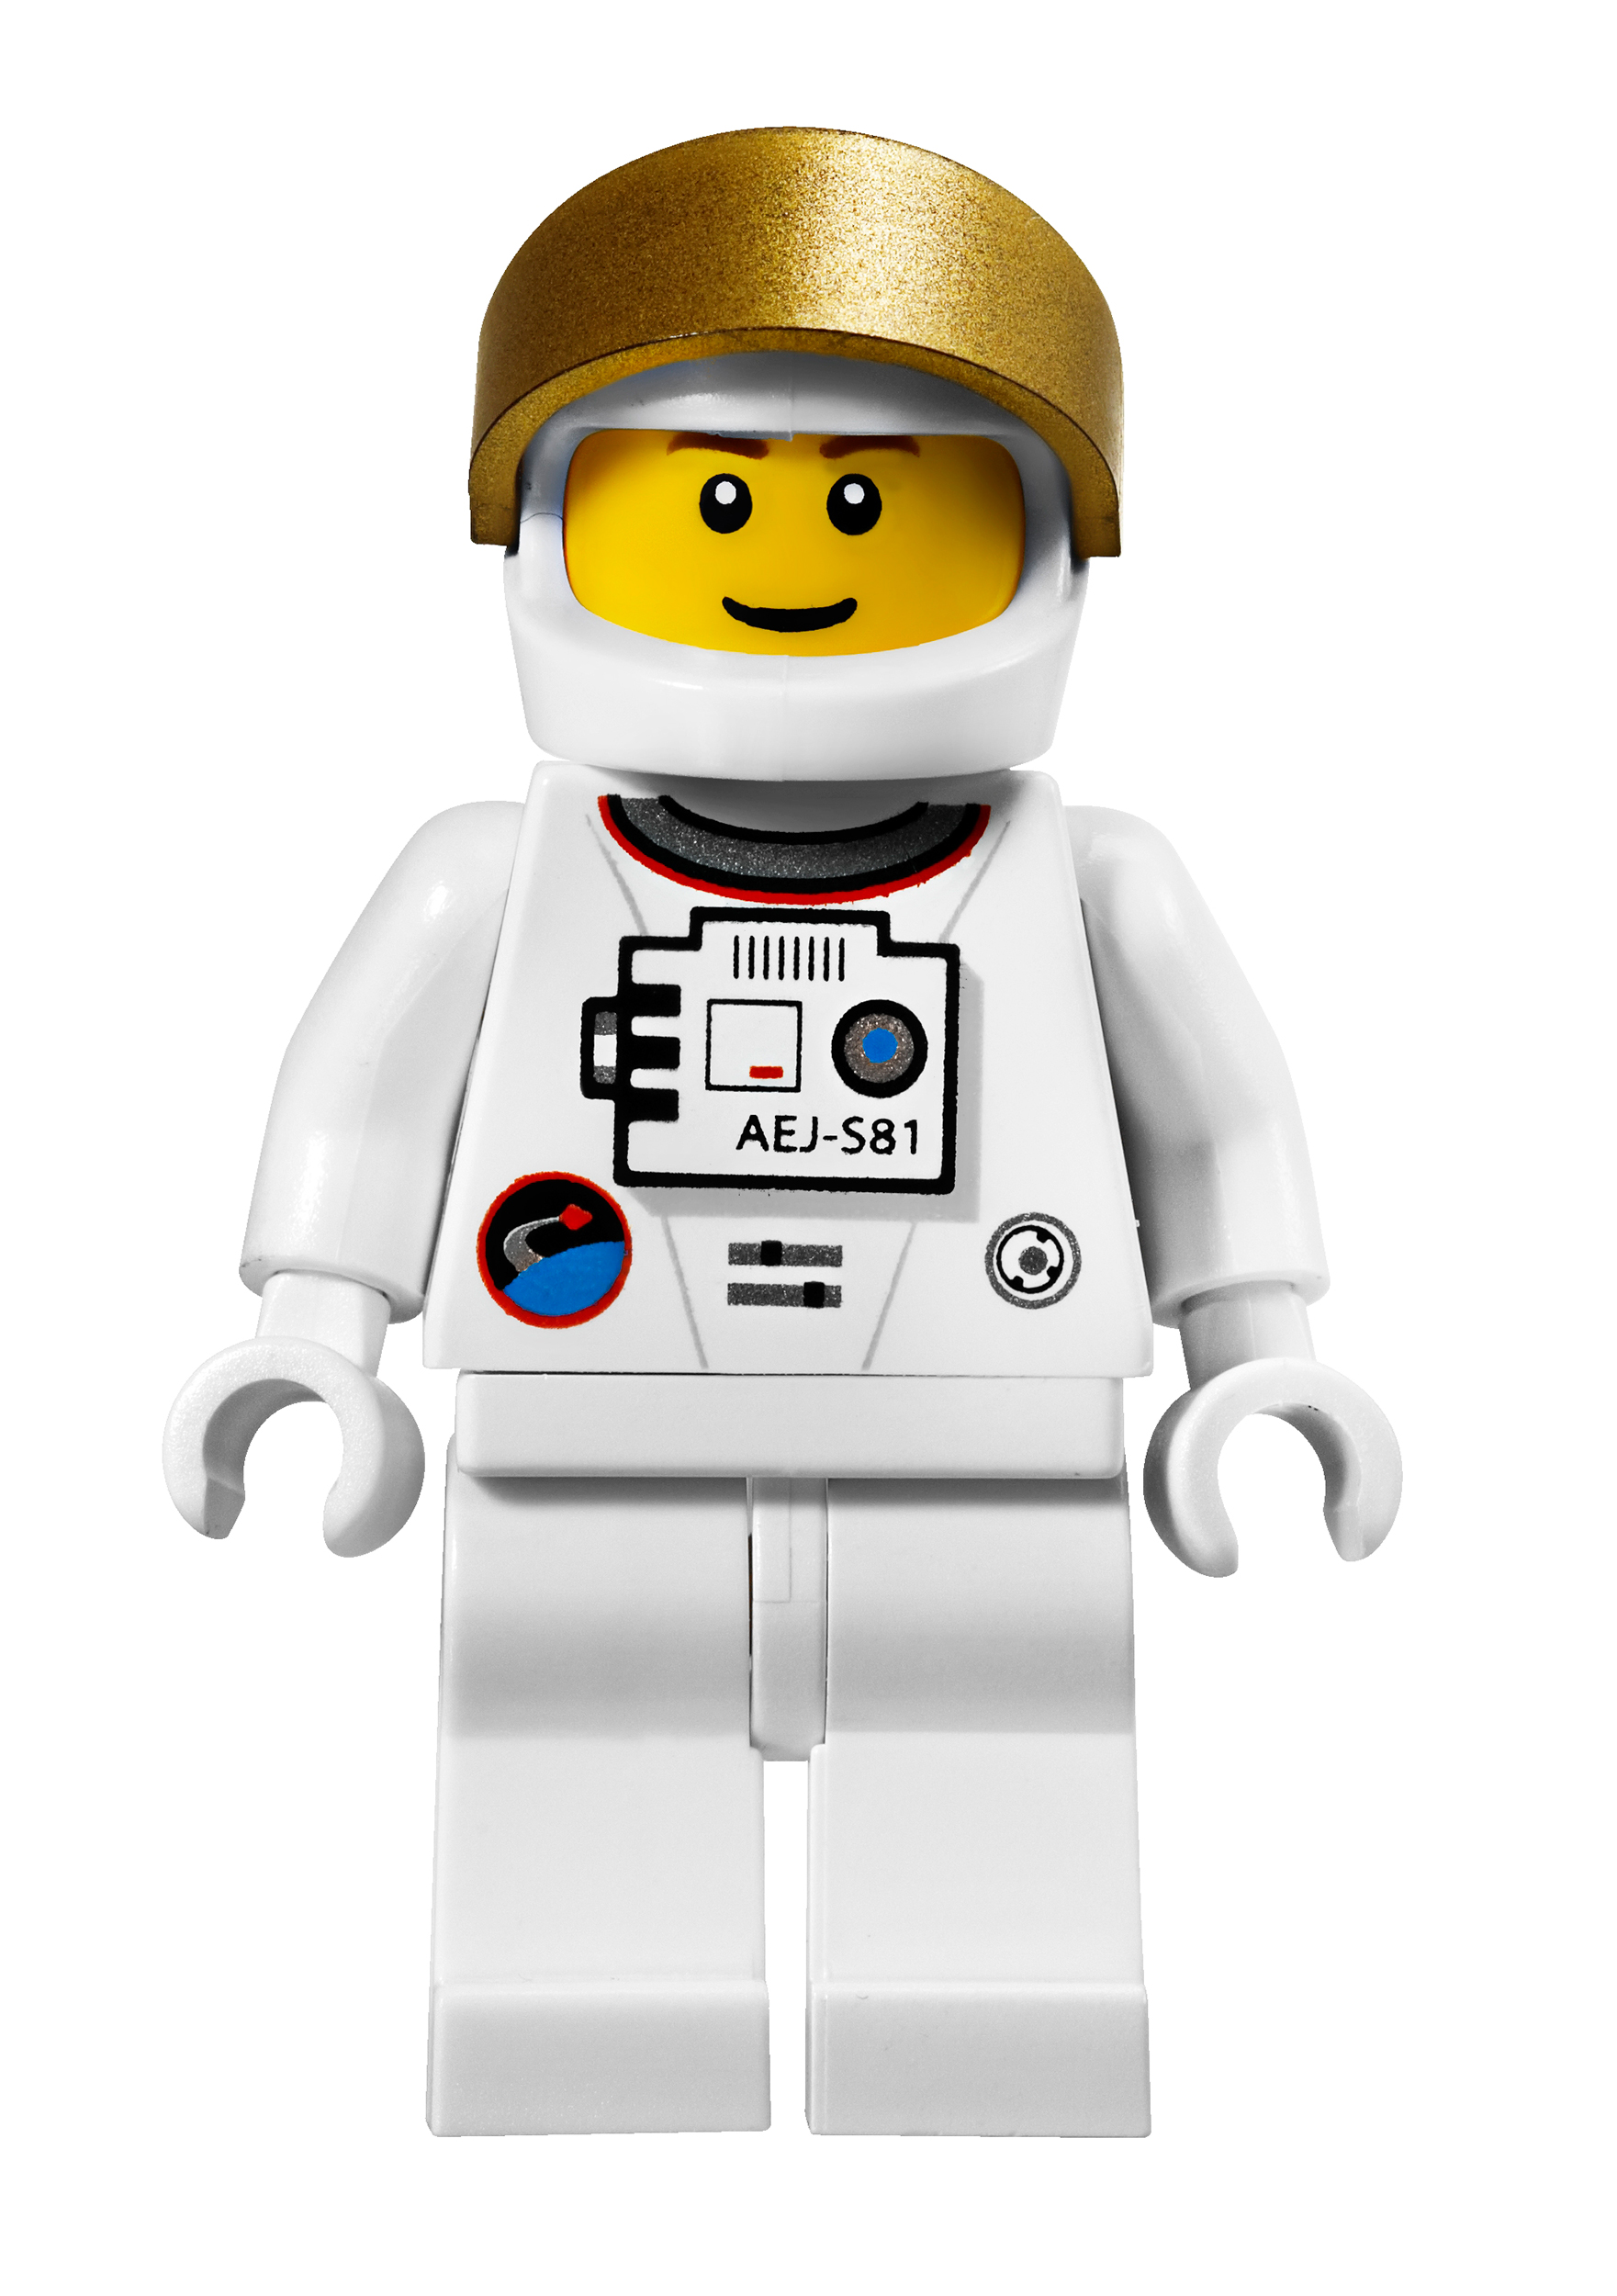 n_10213_minifigure_1_hr.jpg